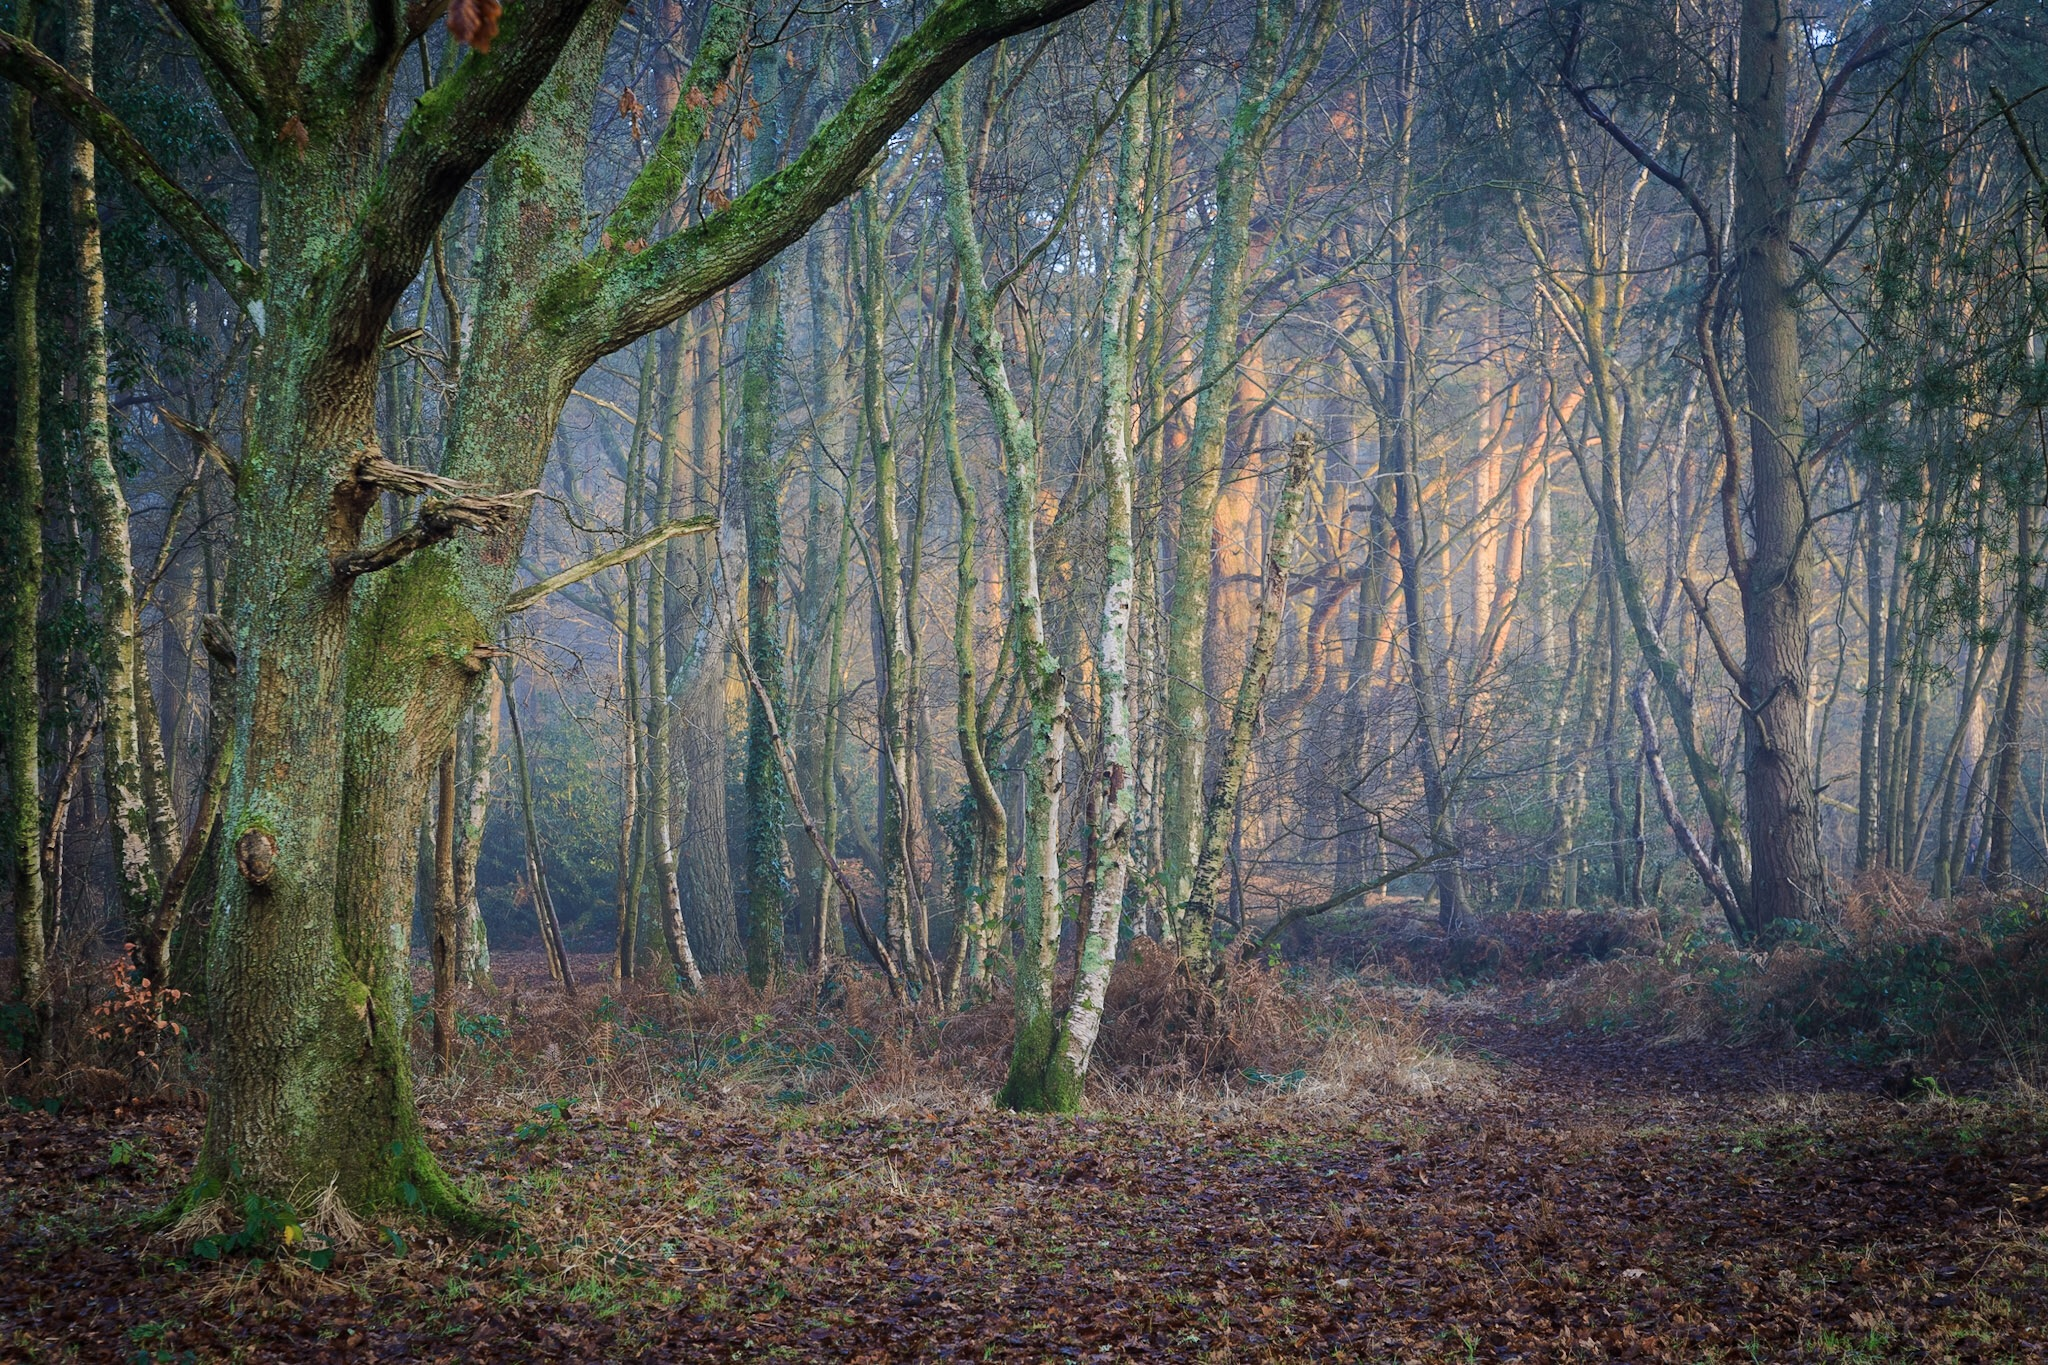 Woods in Poole by Rick McEvoy - Dorset Photographer